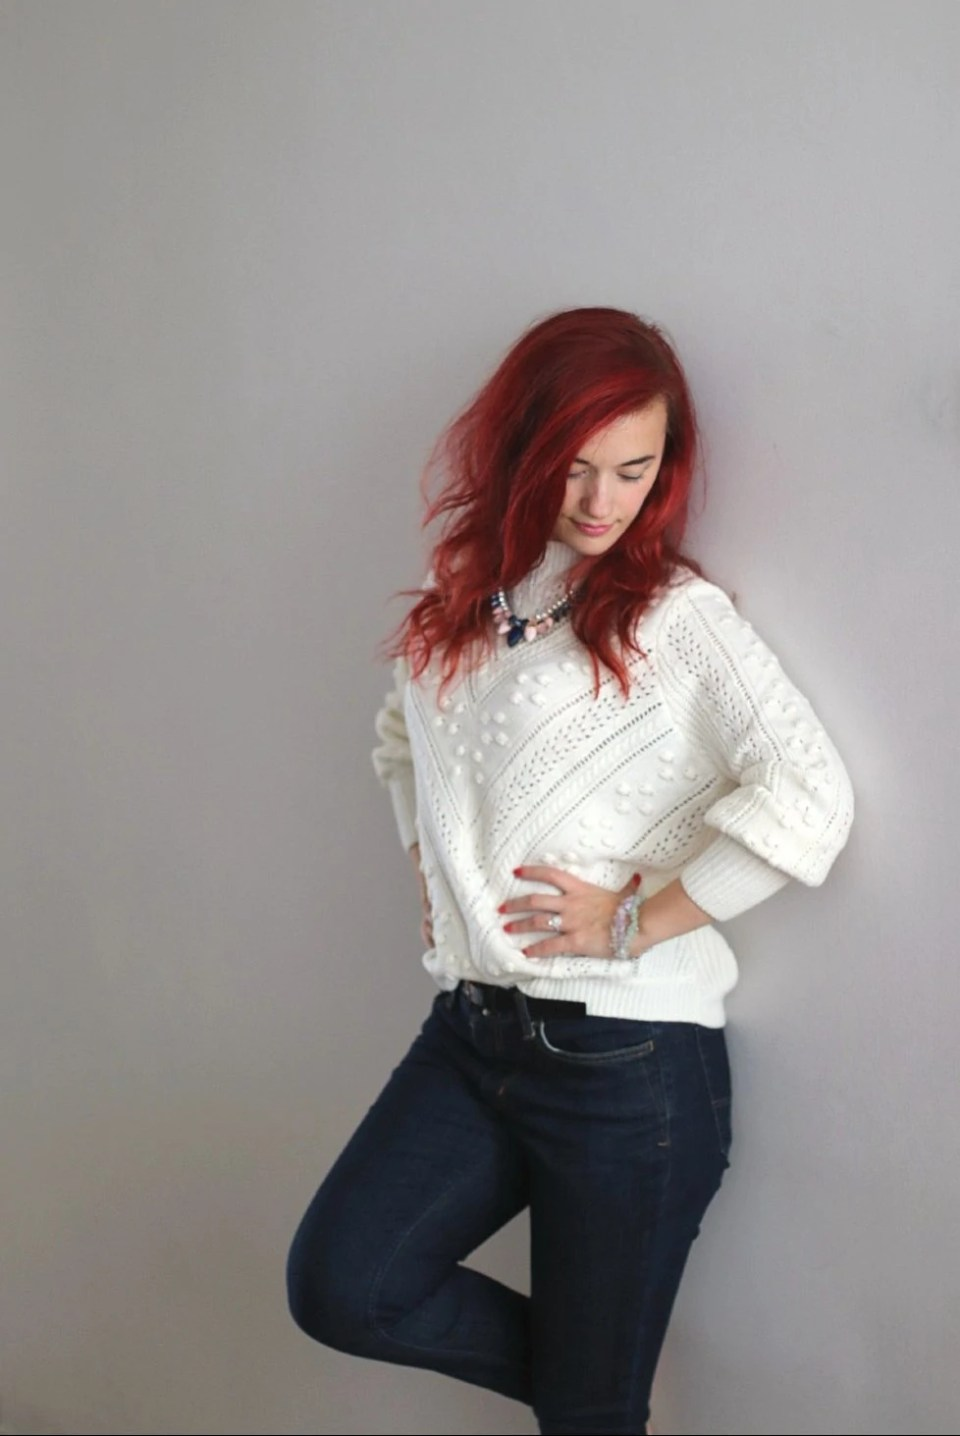 classic-autumn-outfit-jeans-and-sweater.jpg